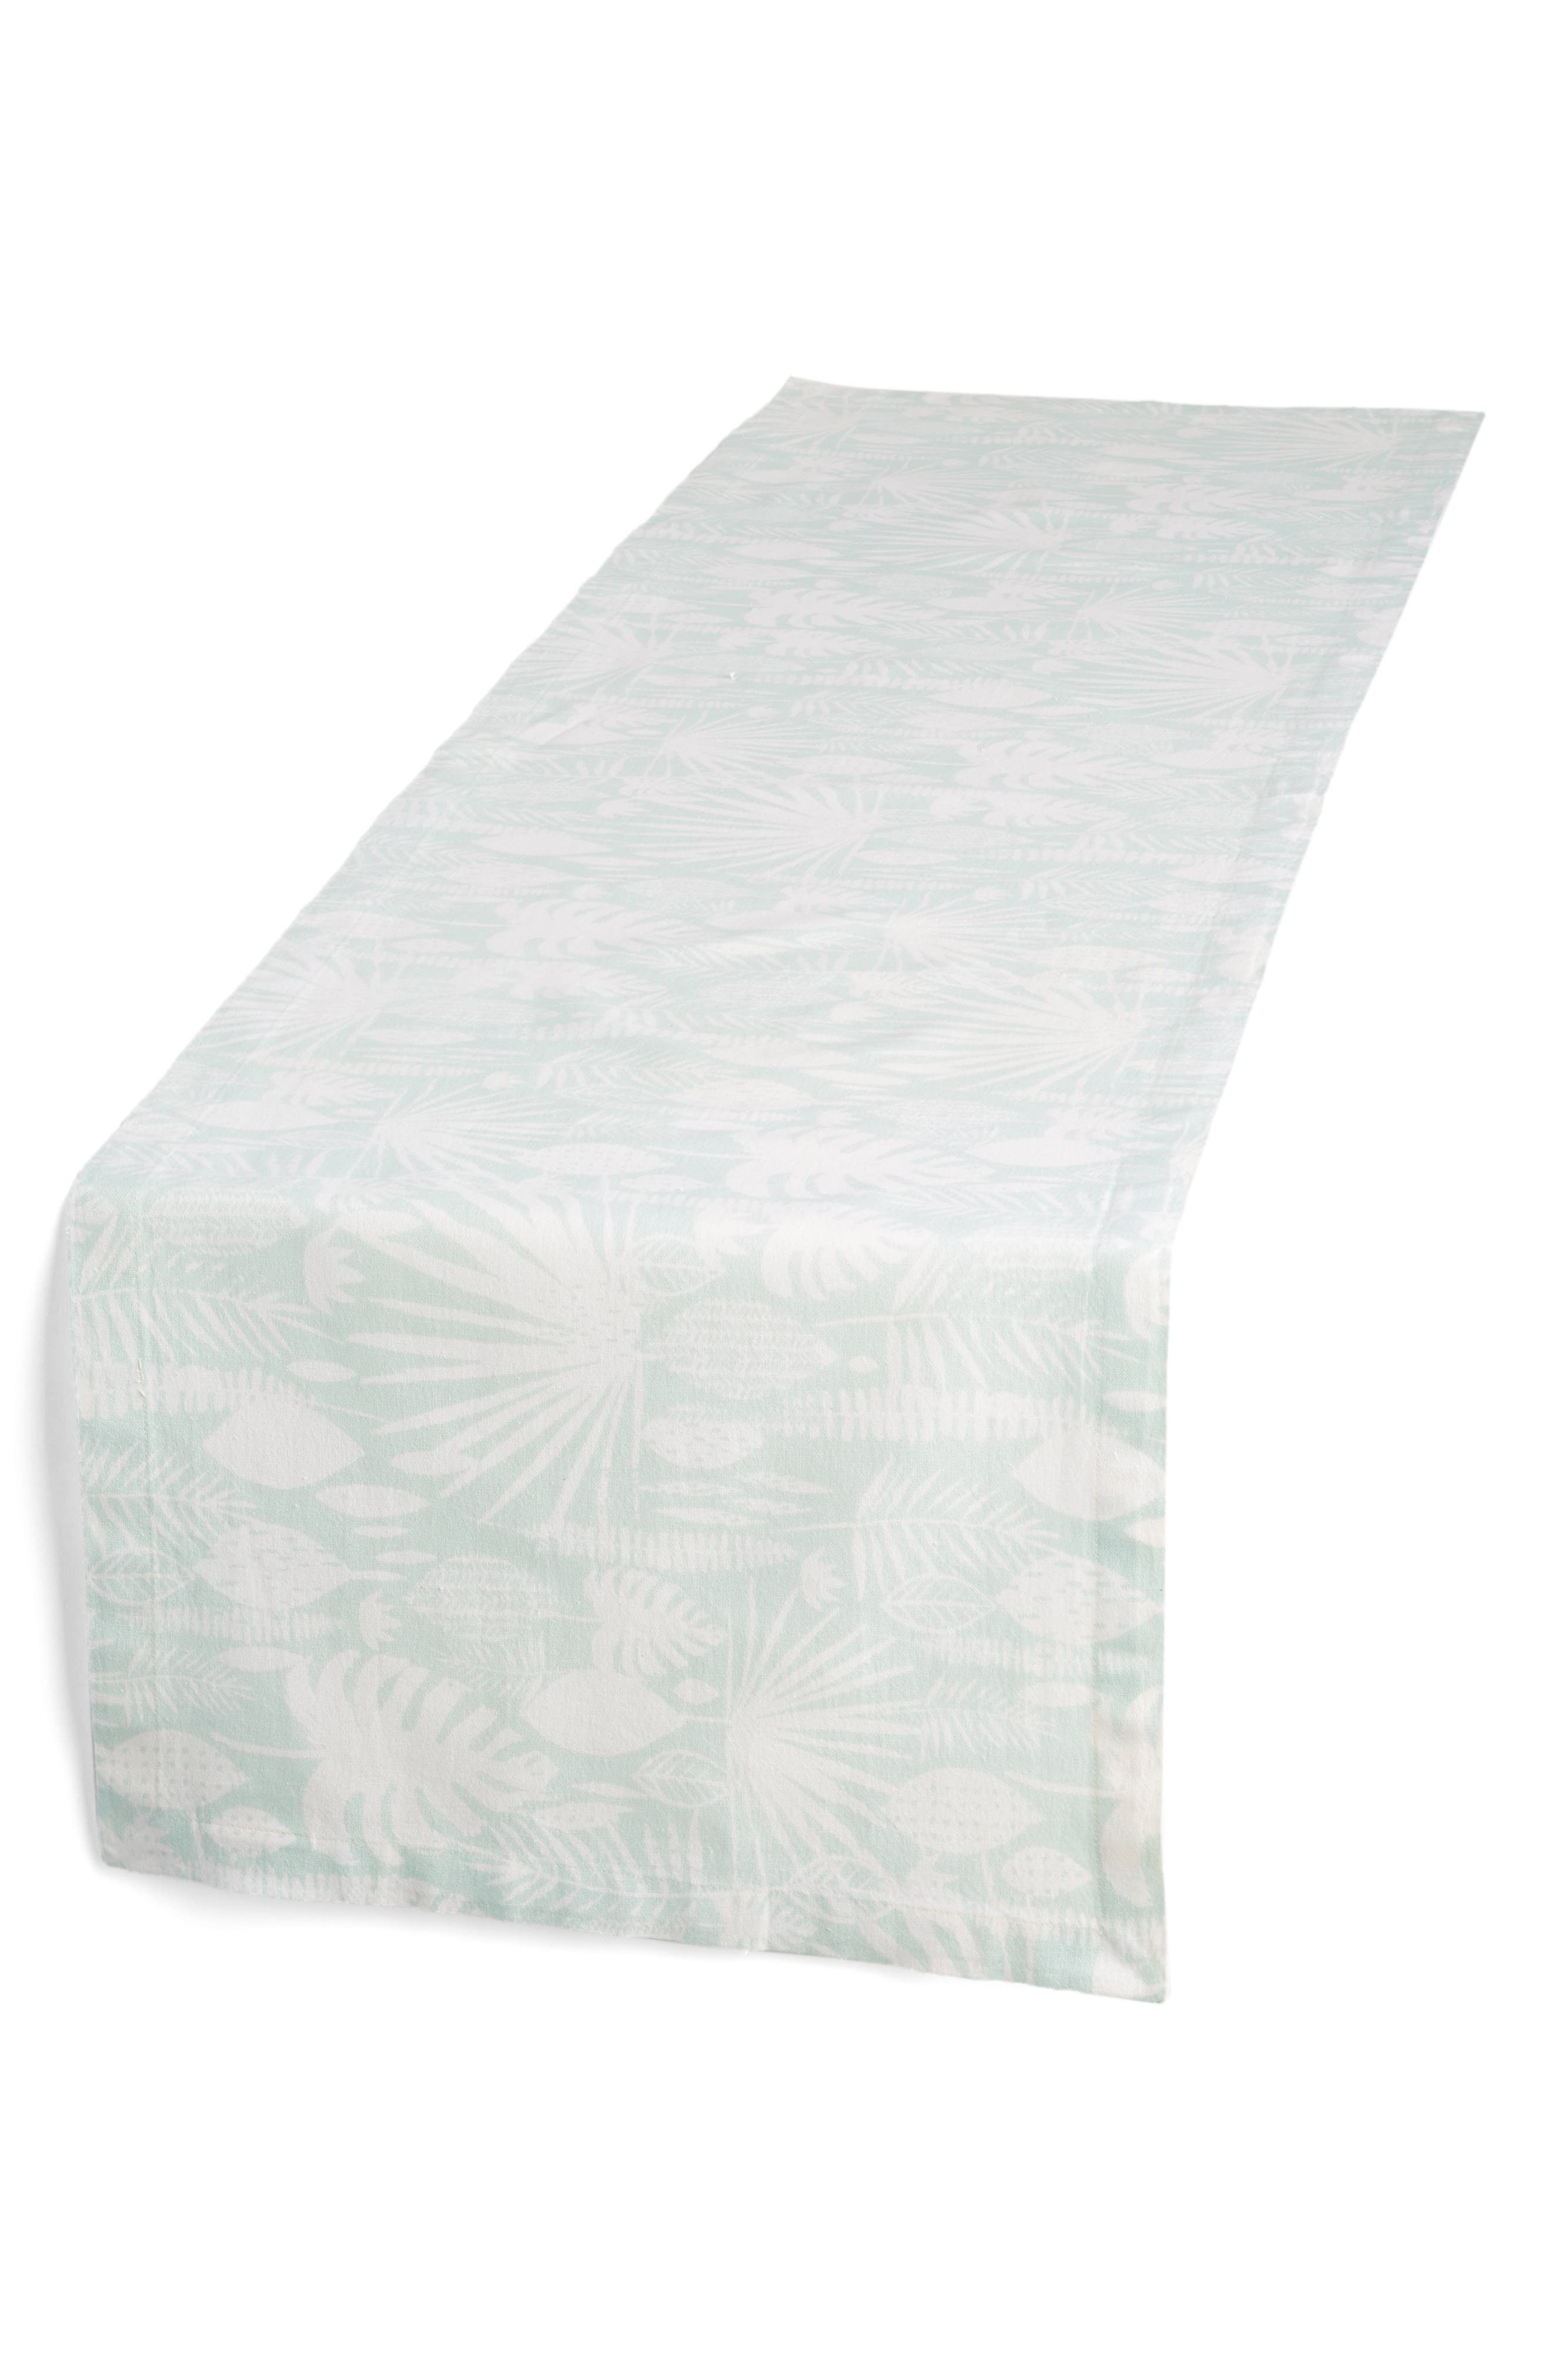 Tropical Leaves Table Runner,                             Main thumbnail 1, color,                             440